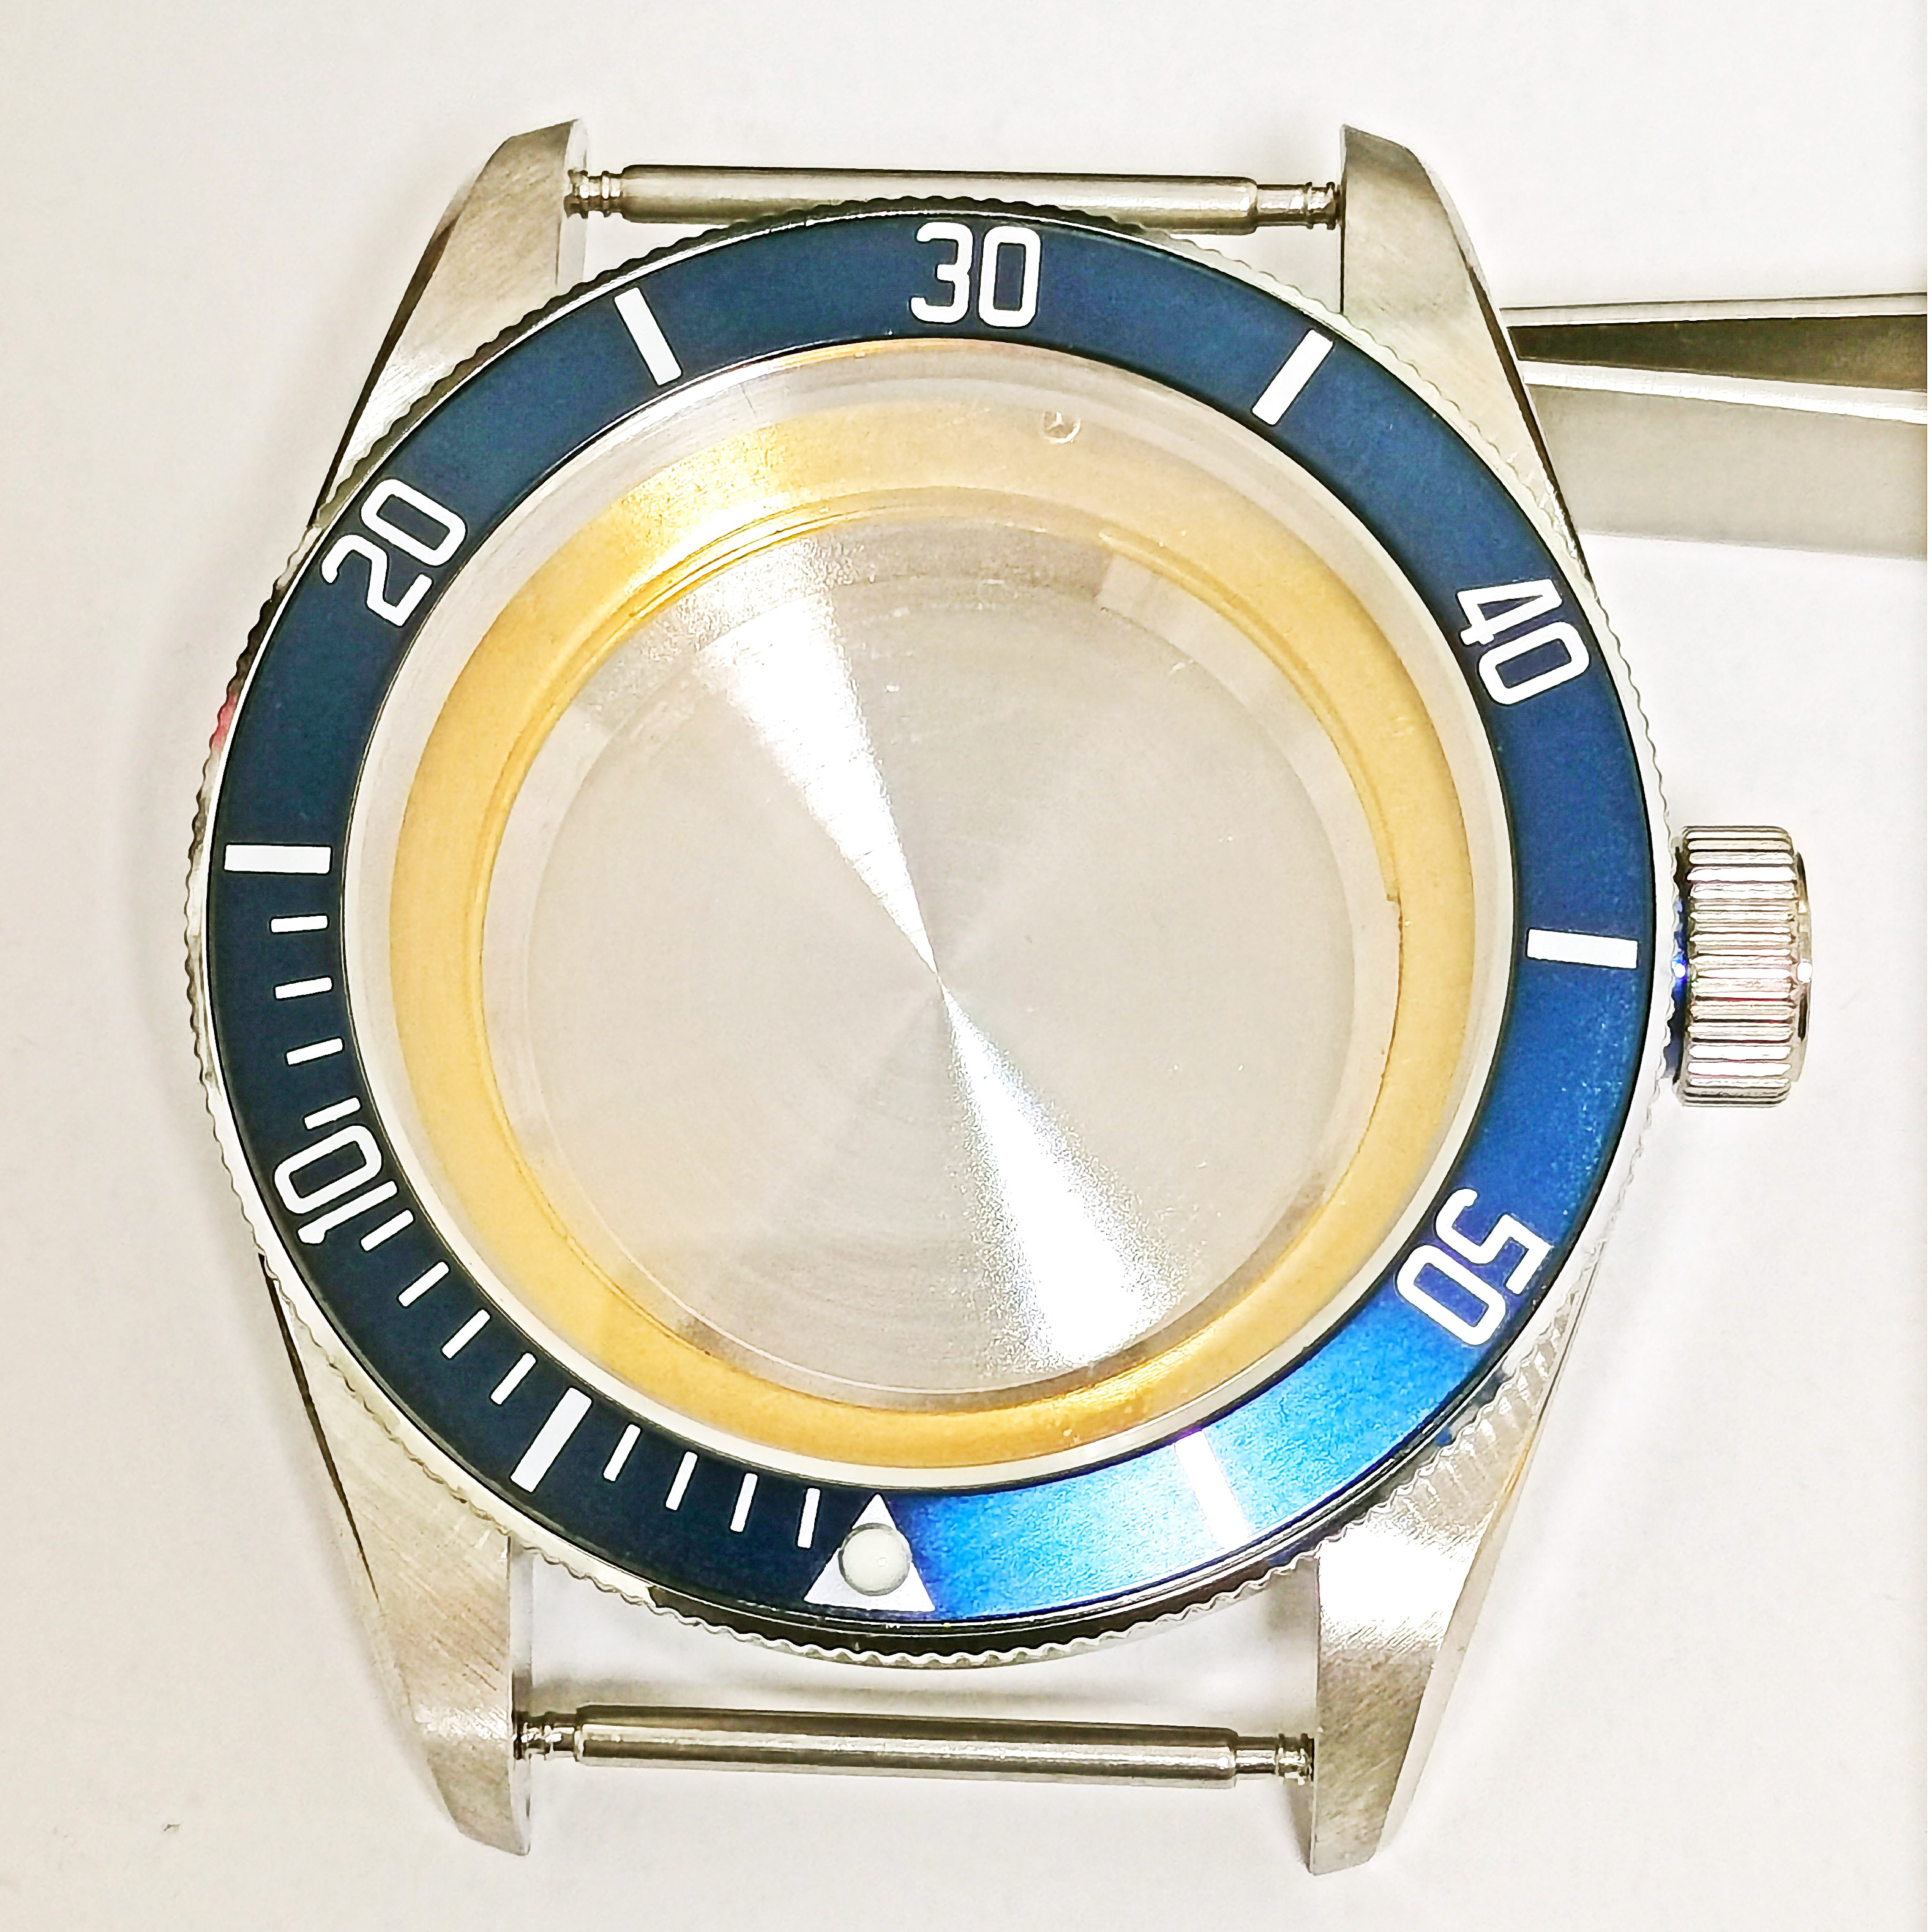 Free Shipping 40MM Man's Watch 316 Stainless Steel Case Dial And Hands For ETA 2836 Automatic Movement miyota8215 Mingzhu2813 enlarge